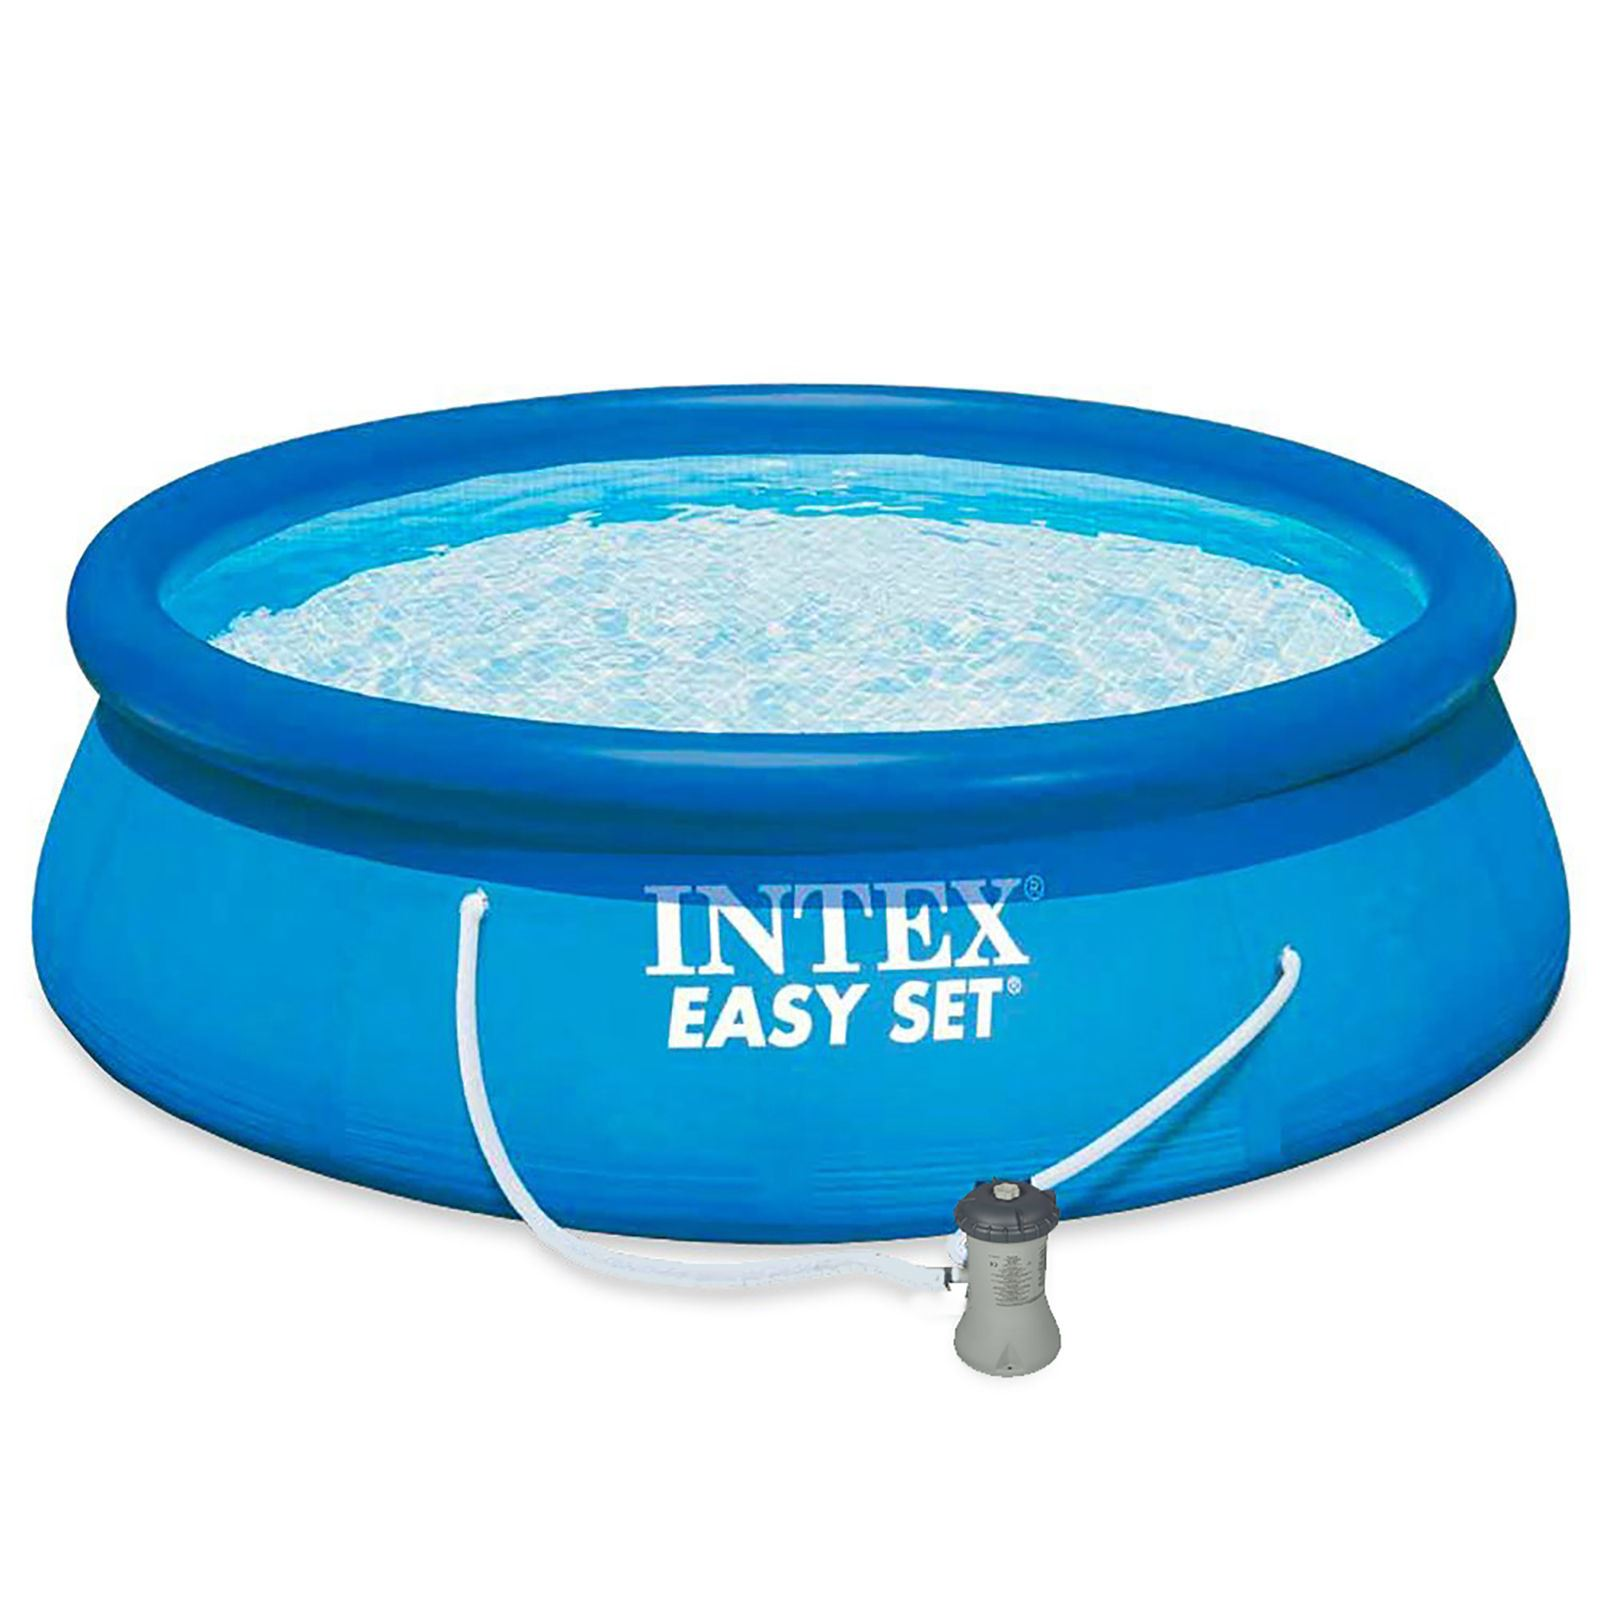 Intex 15' X 36'' Intex Easy Set Pool With Filter Pump #28162